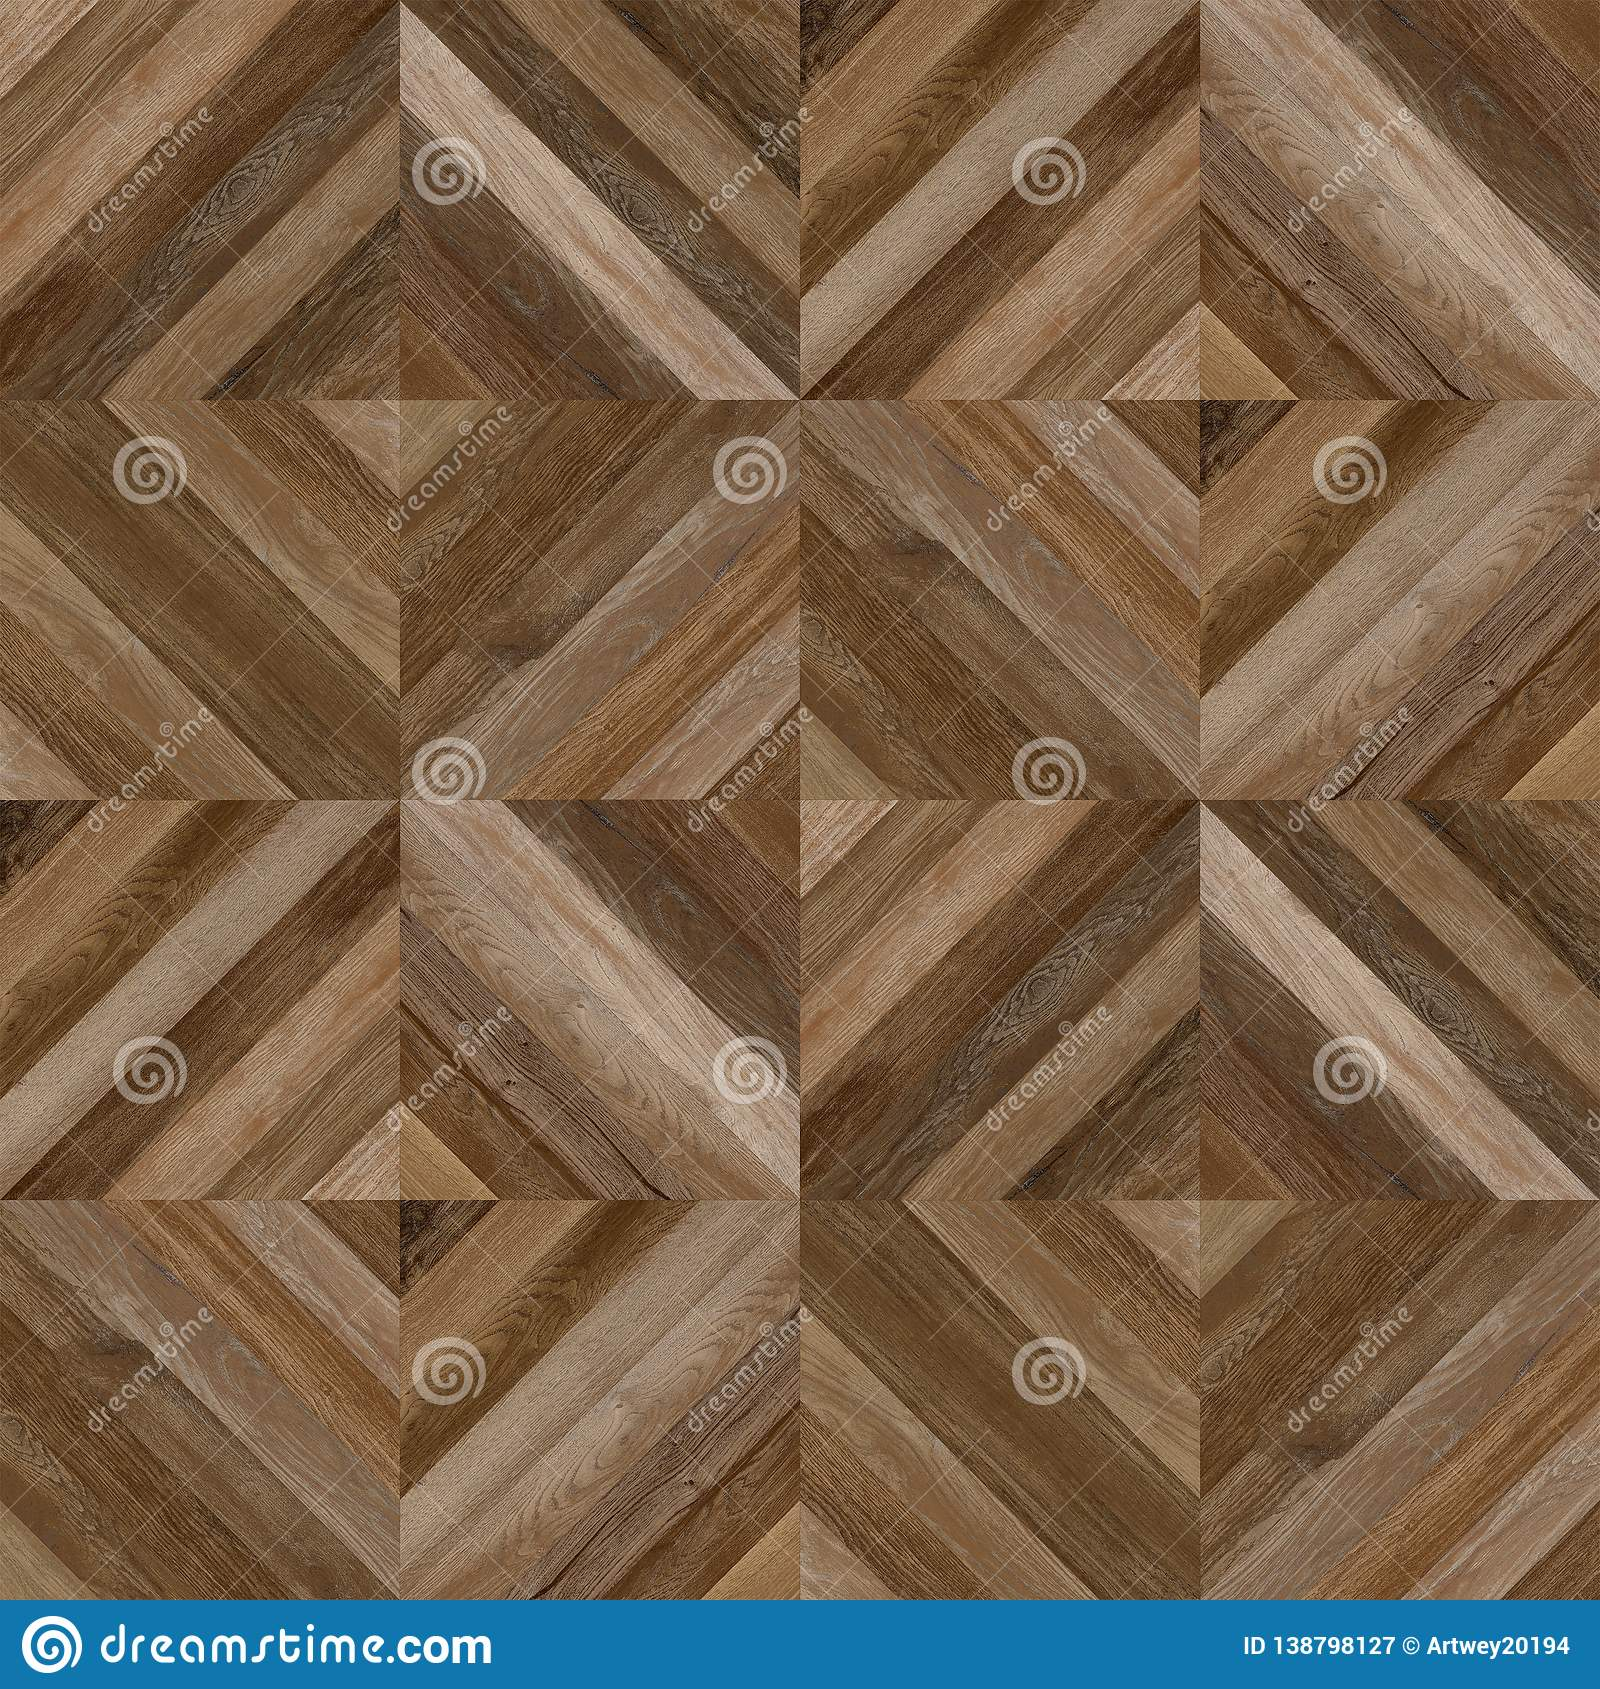 Floor Wood Pattern Tile Texture Stock Image Image Of Background Geometric 138798127